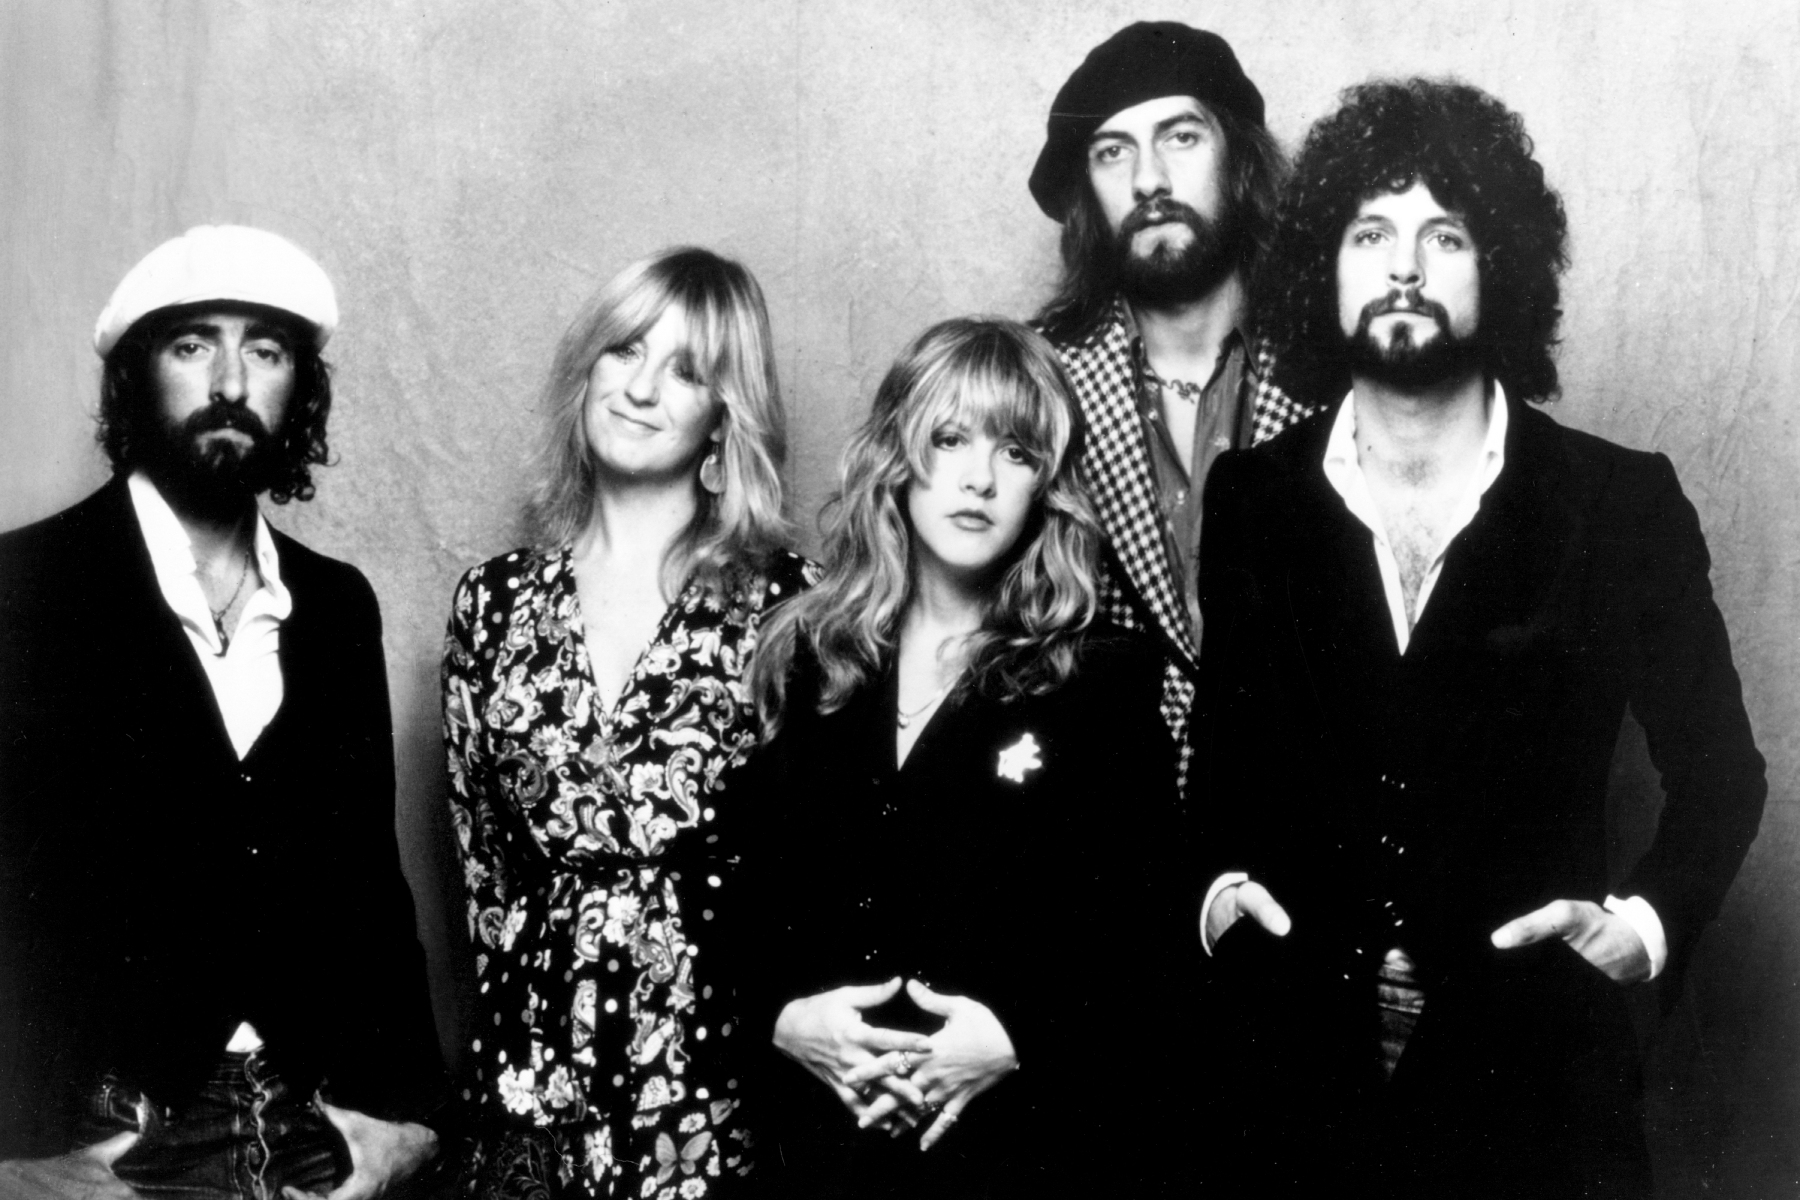 """1975: (L-R) John McVie, Christine McVie, Stevie Nicks, Mick Fleetwood, and Lindsey Buckingham of the rock group """"Fleetwood Mac"""" pose for a portrait in 1975. (Photo by Michael Ochs Archives/Getty Images)"""